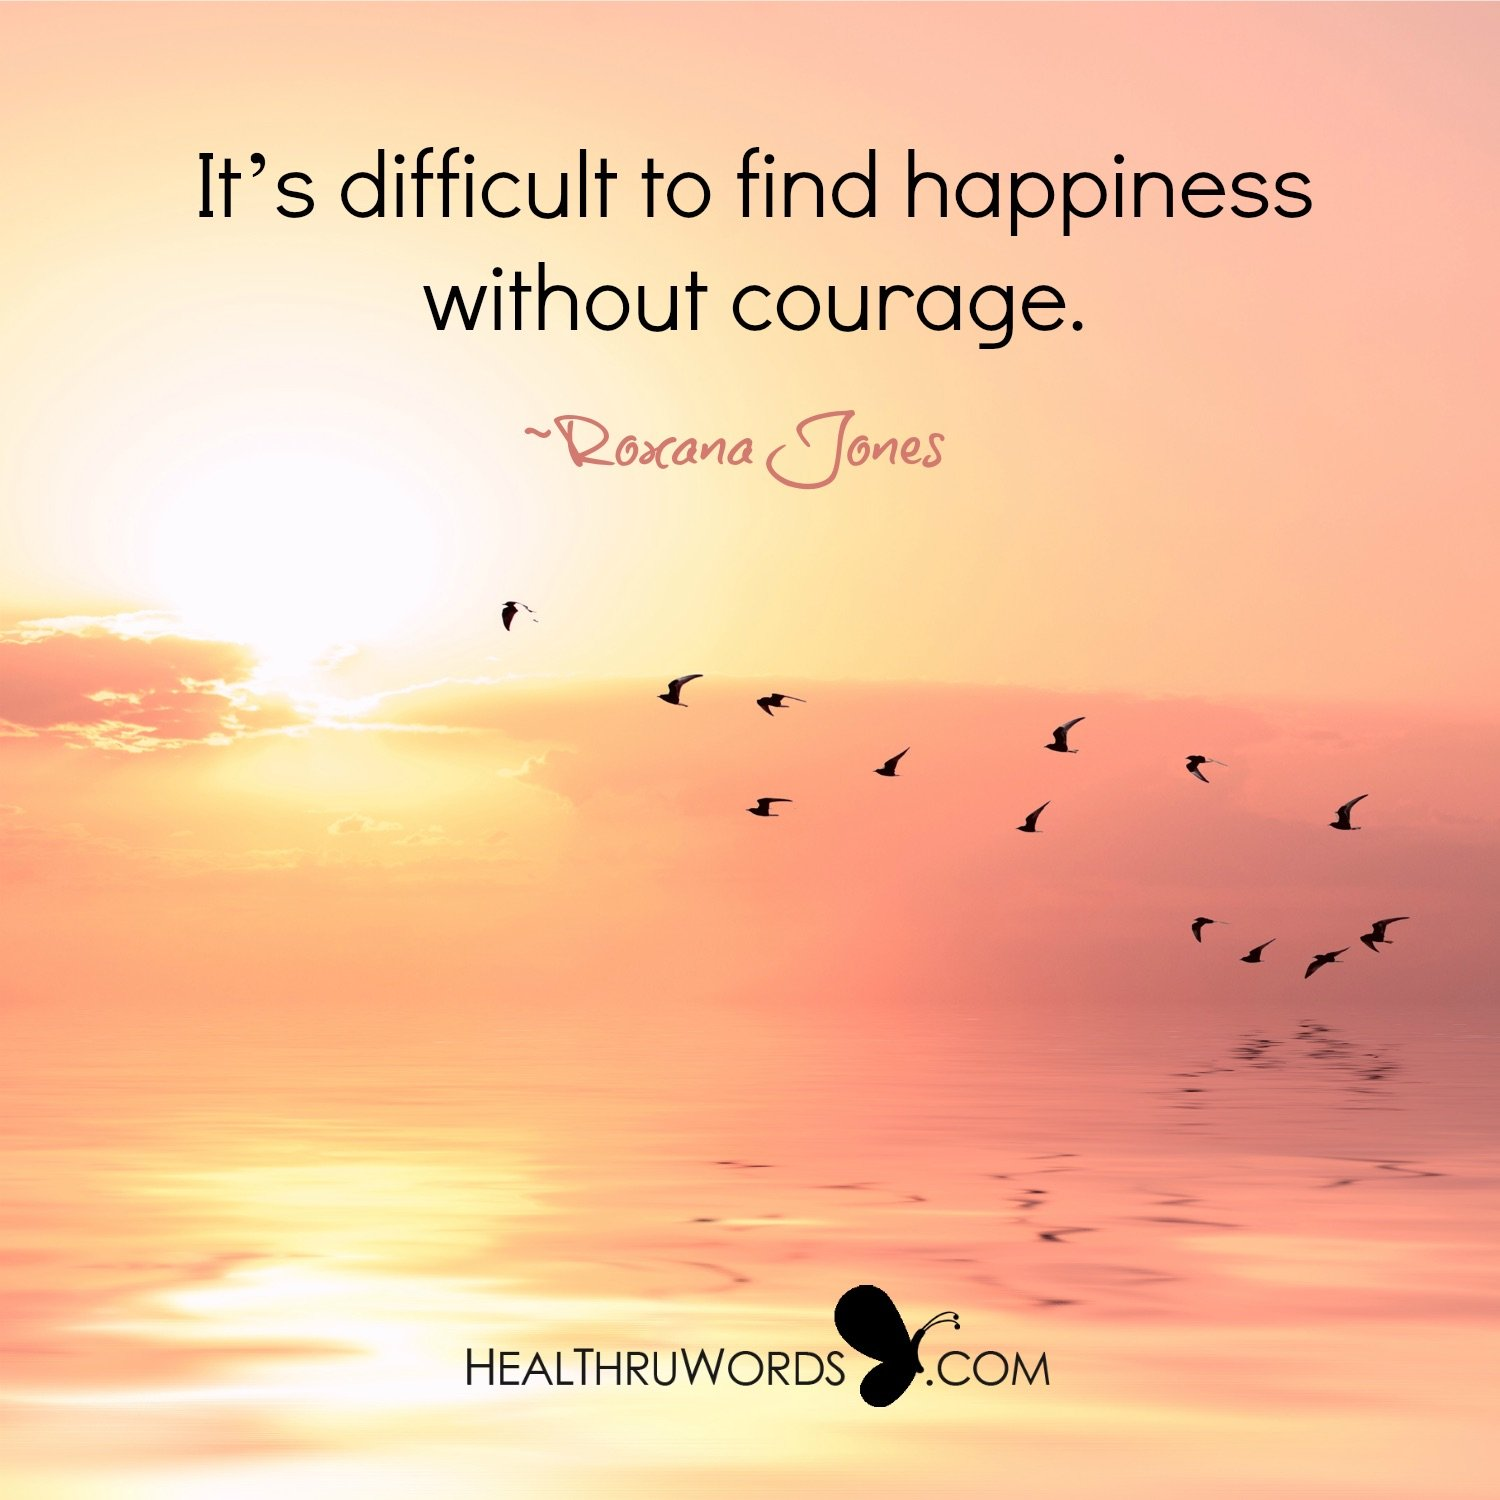 Inspirational Image: From Courage to Happiness